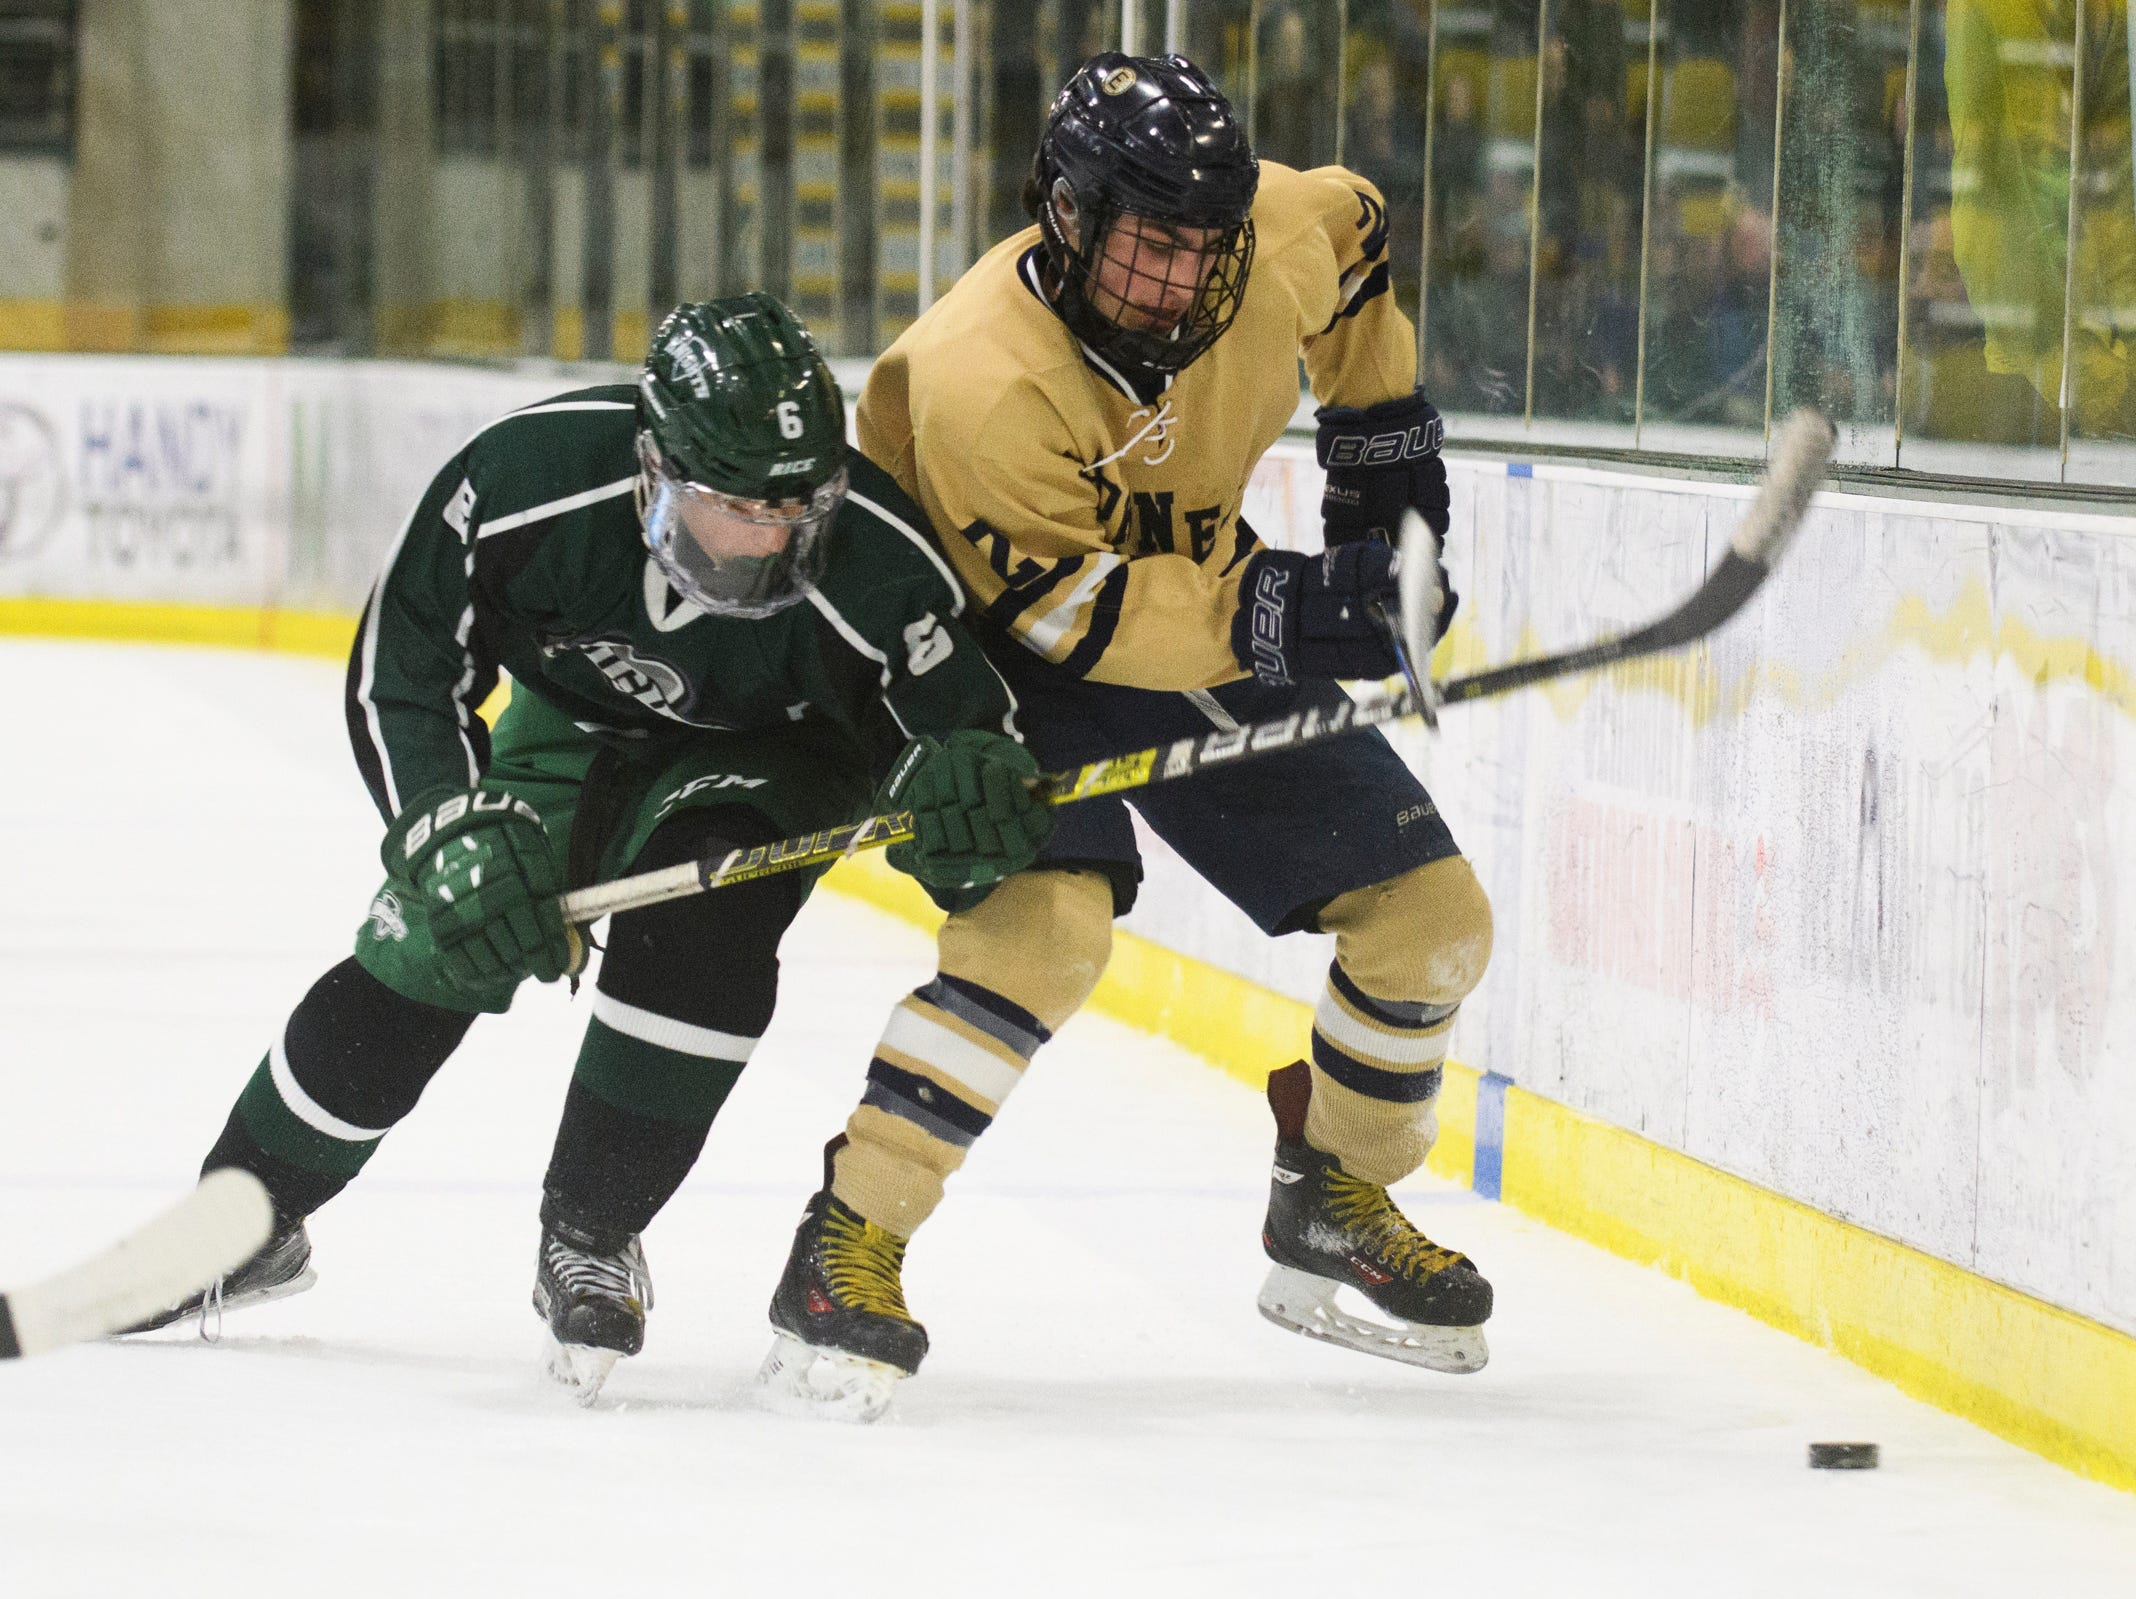 Rice's Jackman Hickey (6) battles for the puck with Essex's Grady Cram (2) during the DI boys hockey championship game between the Rice Green Knights and the Essex Hornets at Gutterson Field House on Wednesday night March 13, 2019 in Burlington, Vermont.